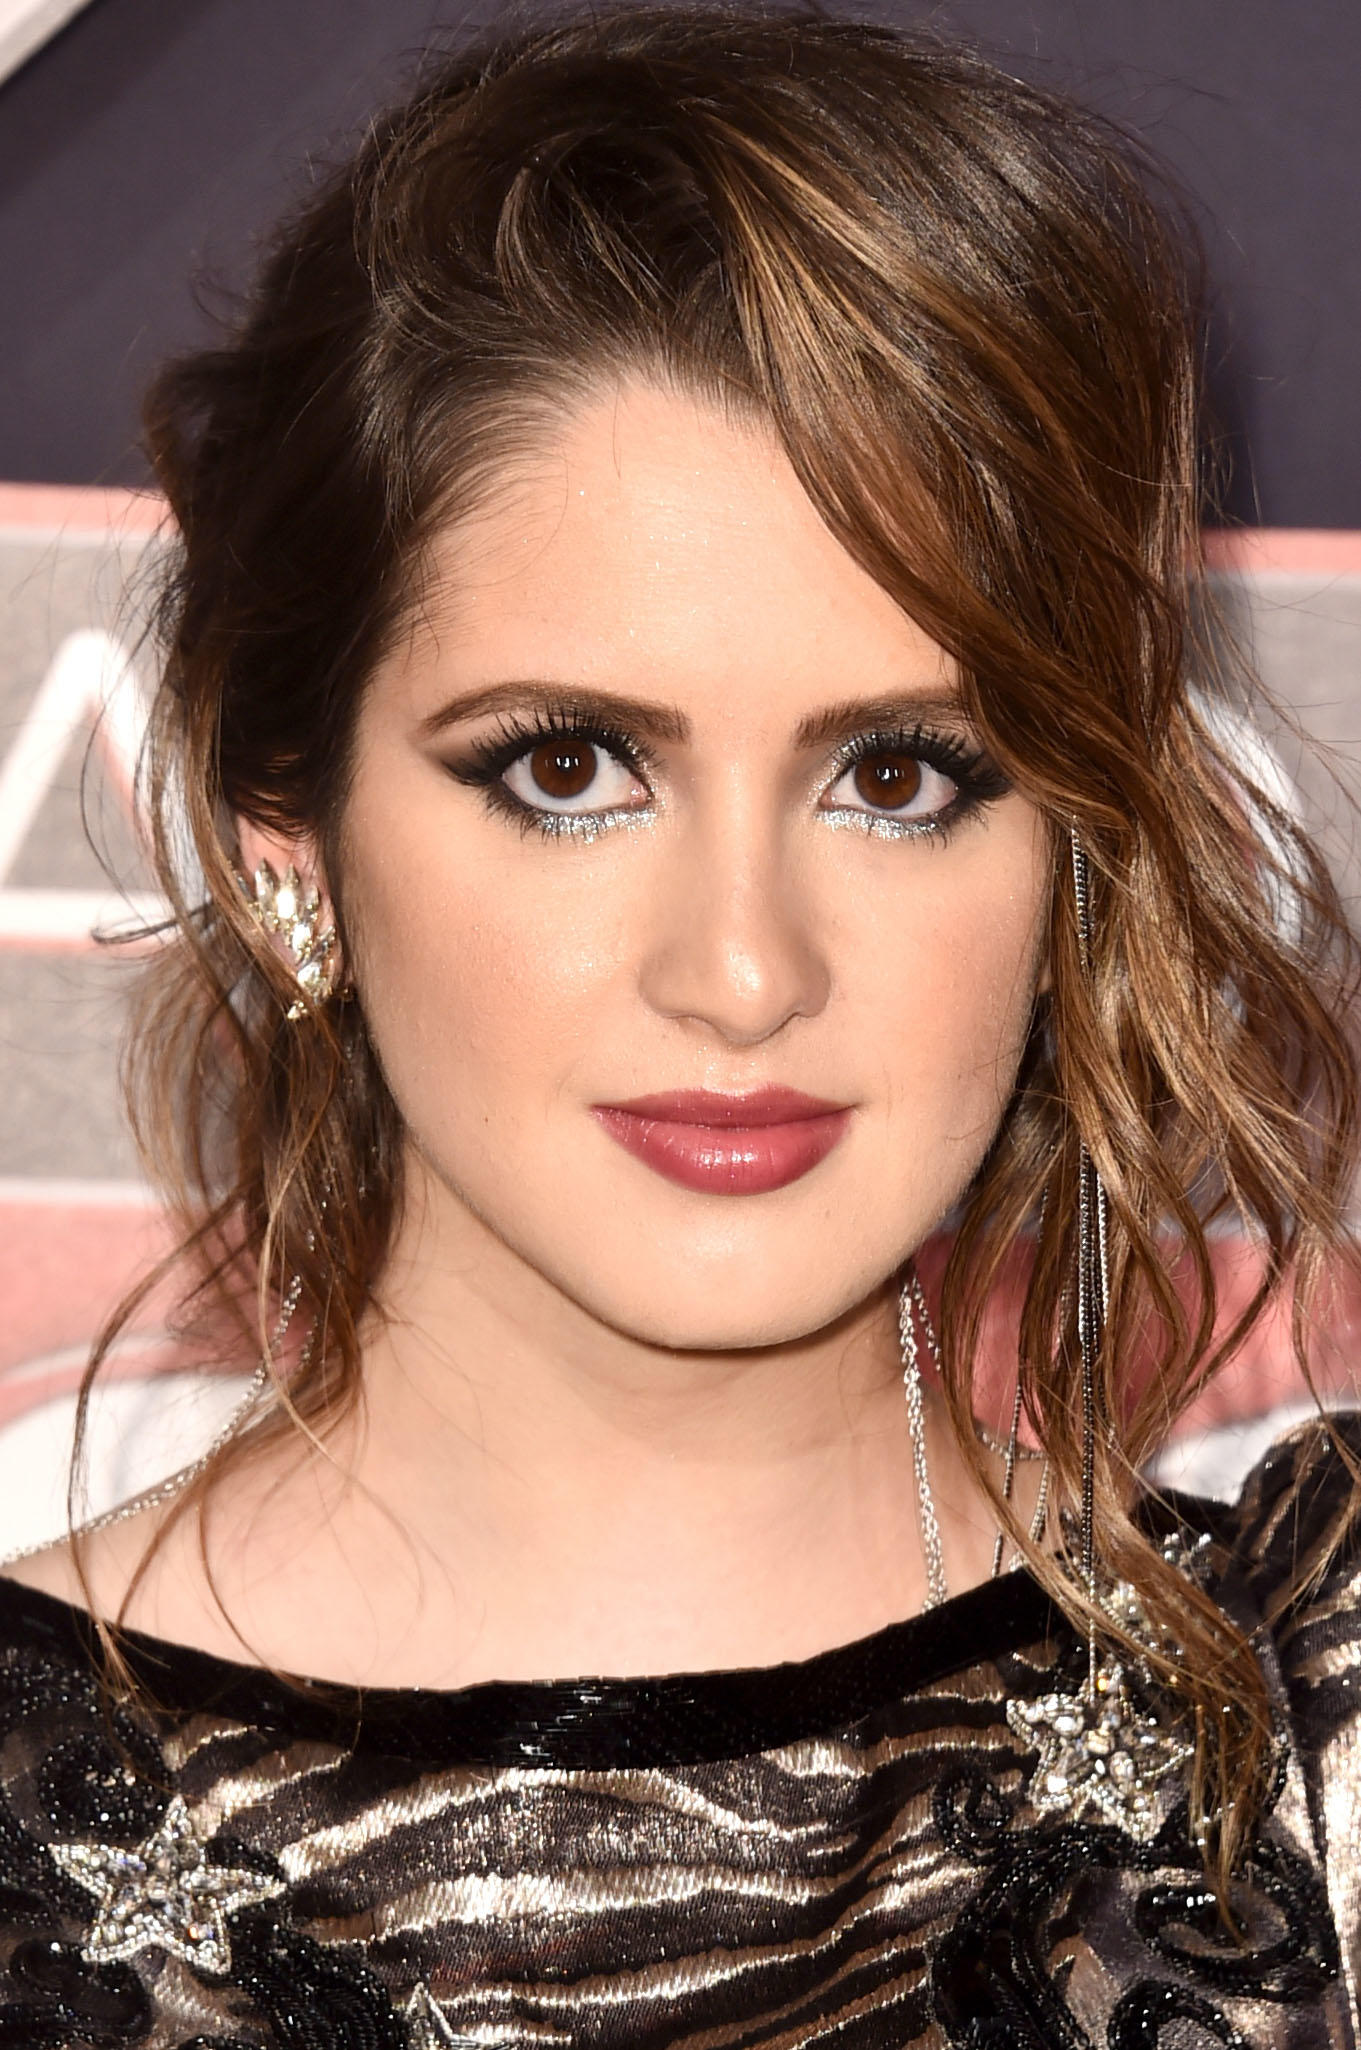 Laura Marano at the 2017 iHeartRadio Music Awards in Inglewood, CA.